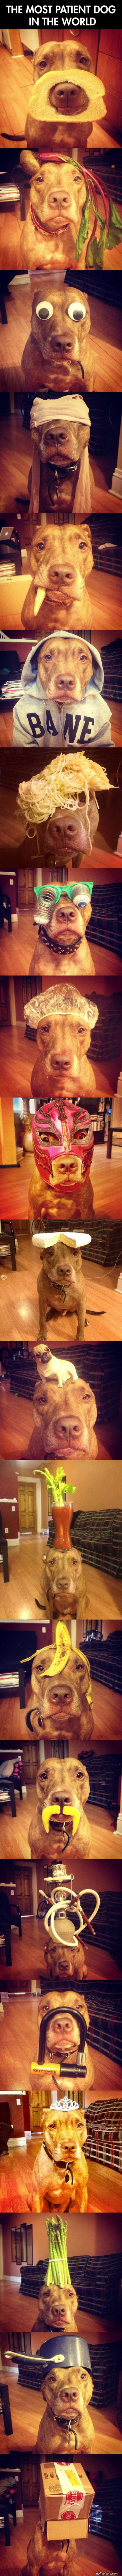 most patient dog in the world funny picture